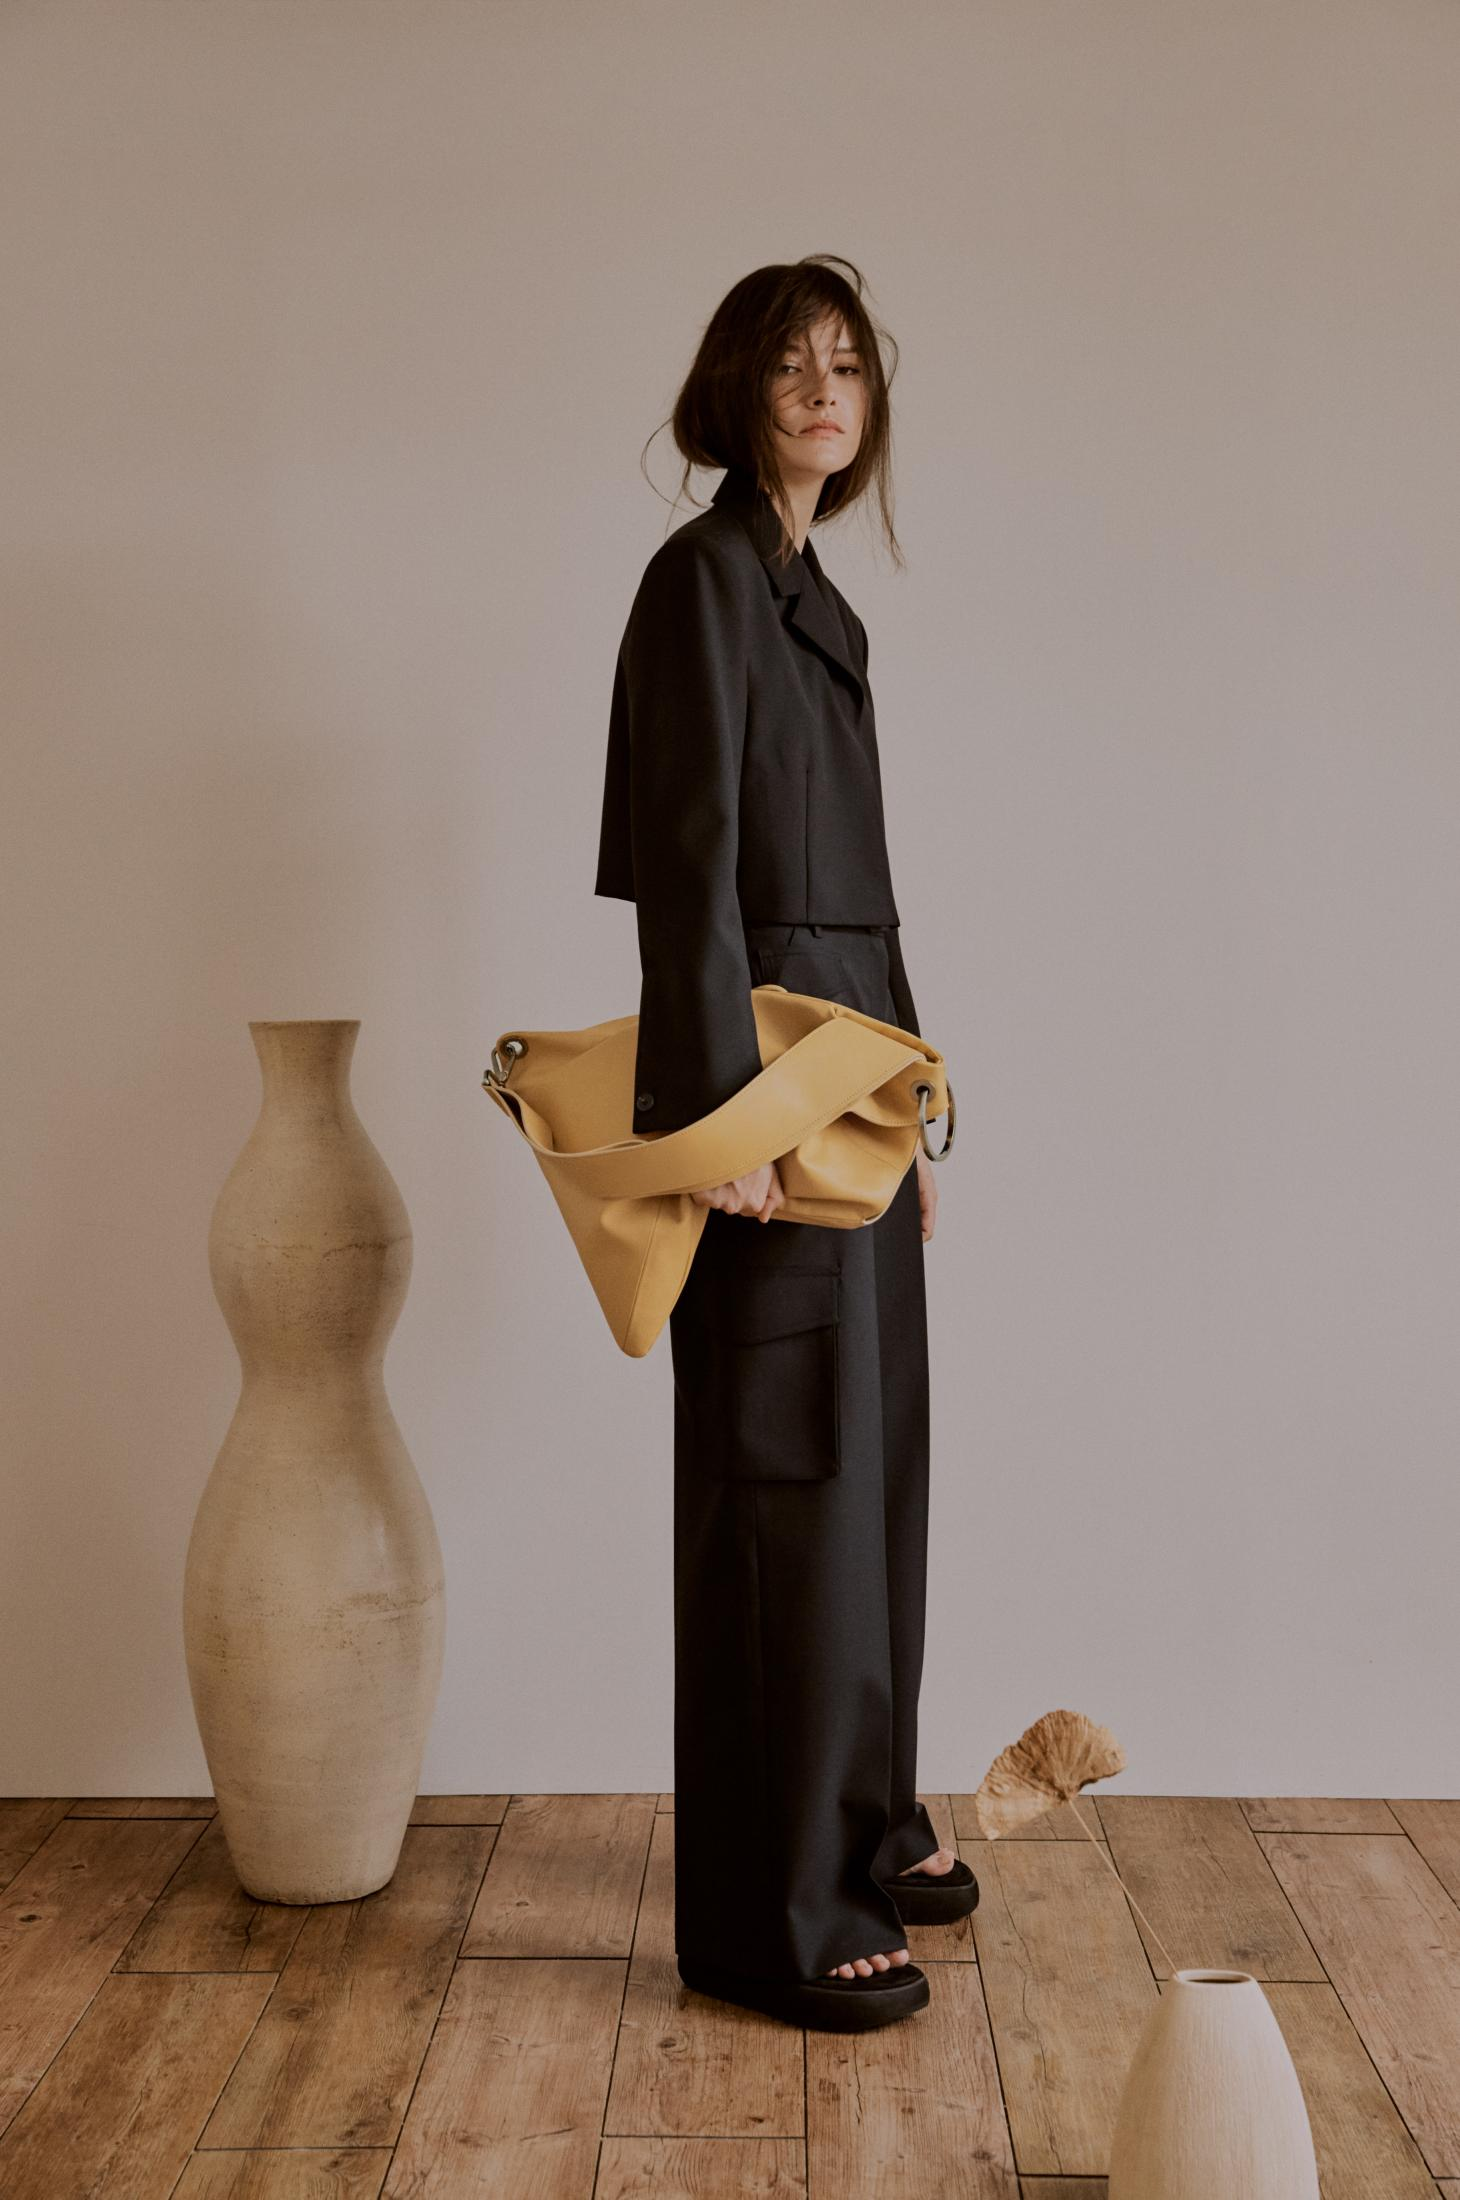 Woman stands holding a beige leather pouch